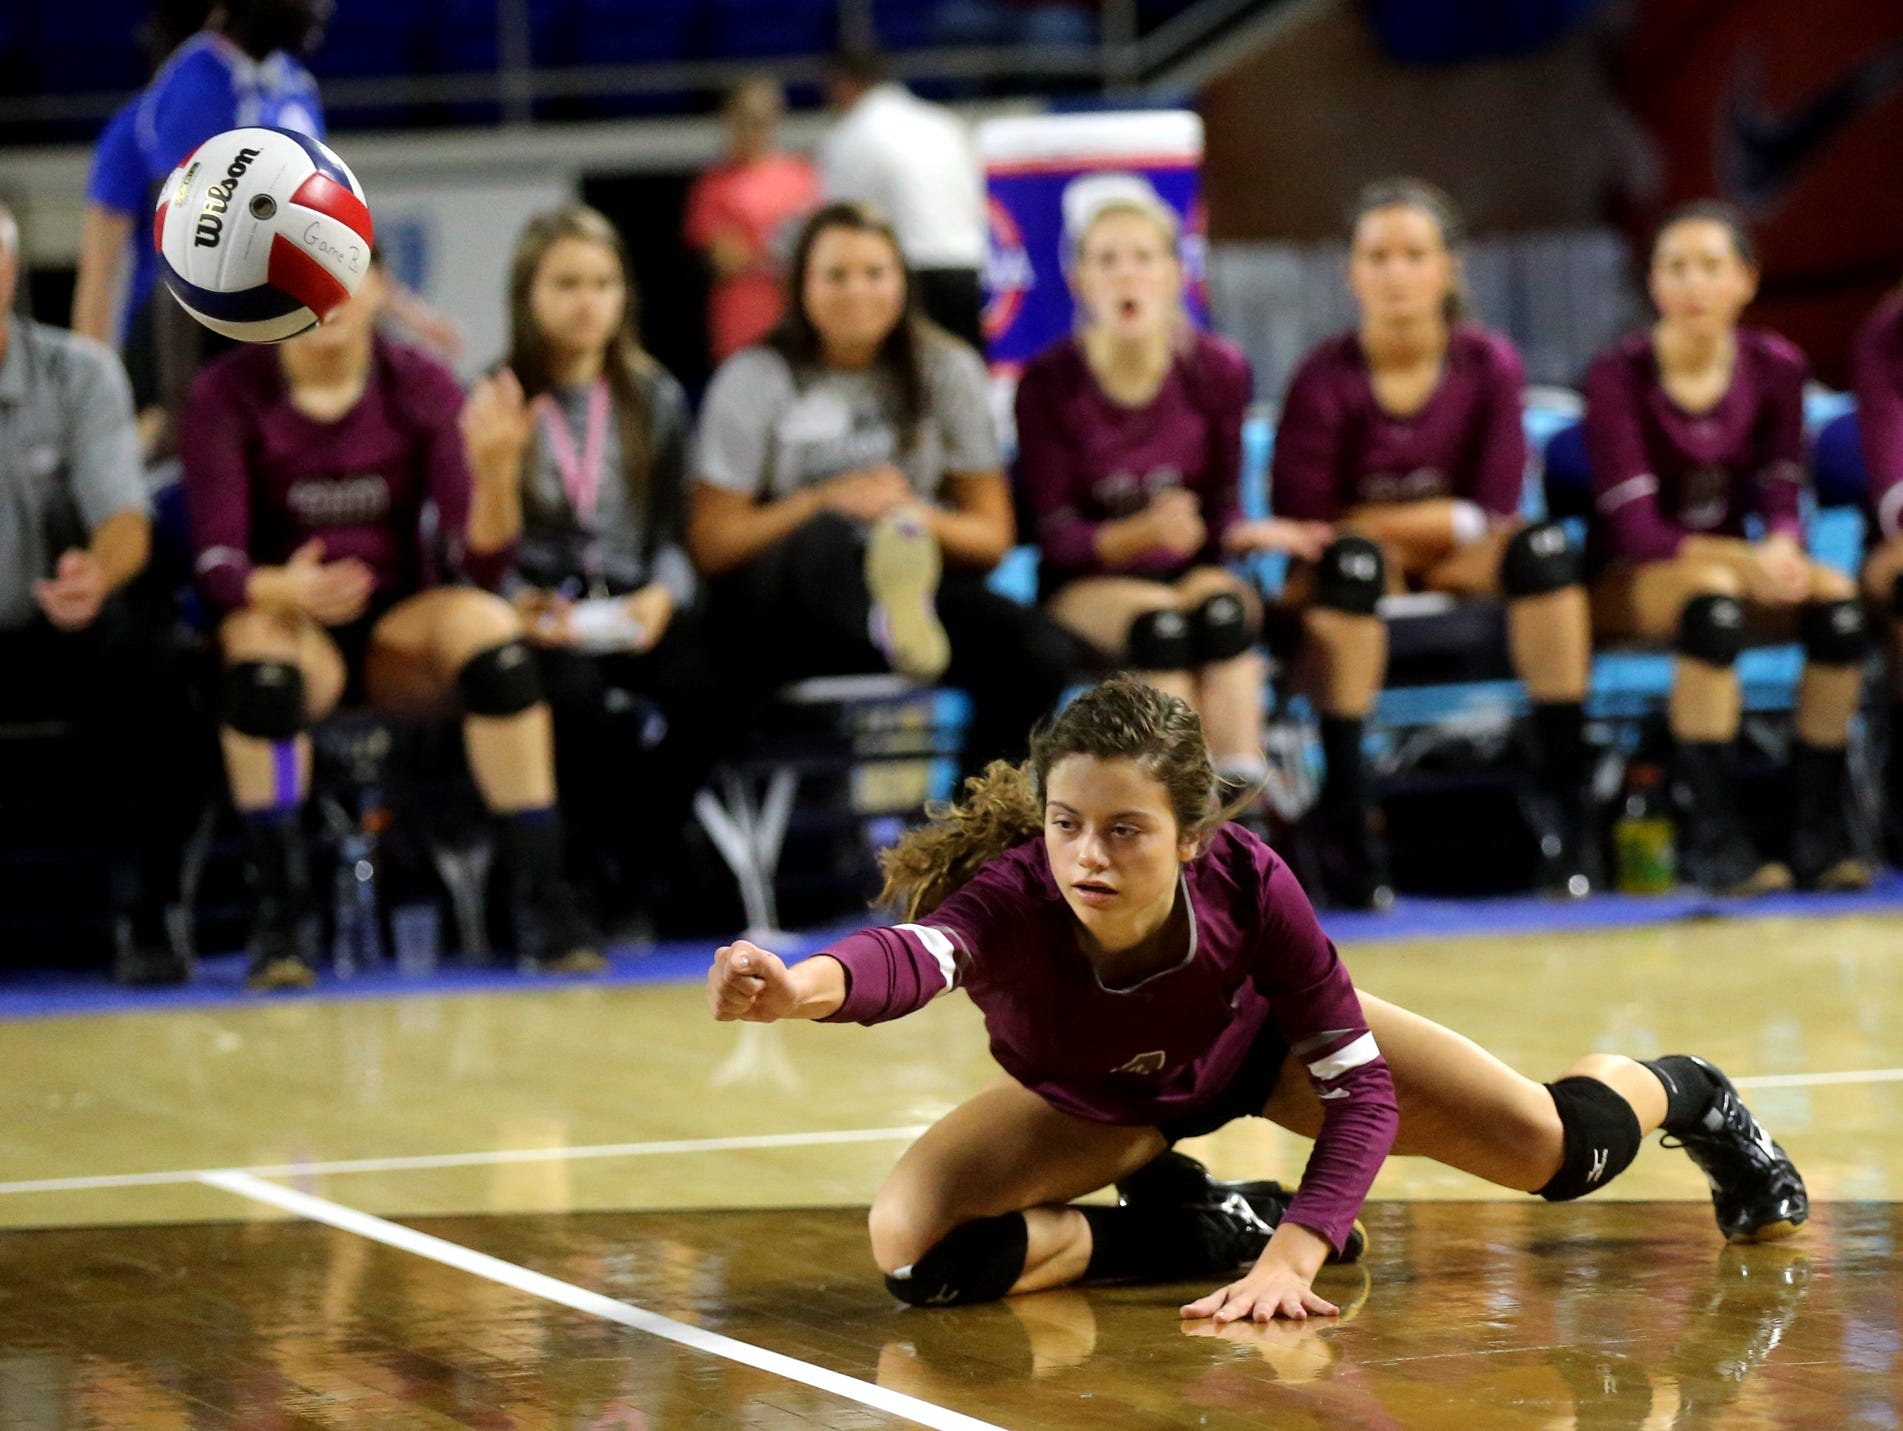 Eagleville's Abby Creech (4) dives for a ball during the losers bracket game of the TSSAA Class A state volleyball tournament against Summertown, on Thursday, Oct. 22, 2015, at MTSU.